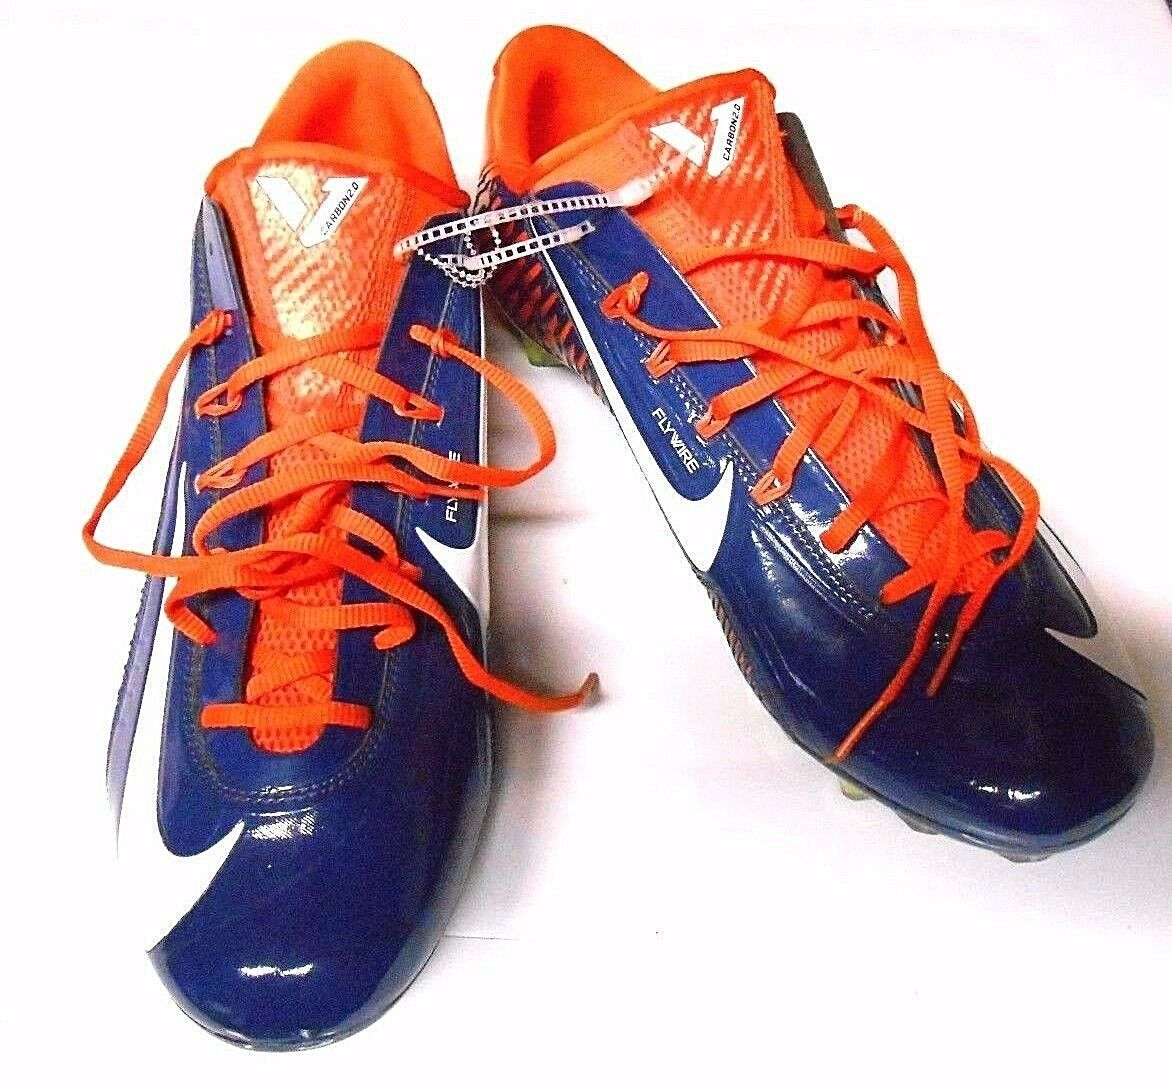 Nike VAPOR CARBON 2.0 Flywire TD Football Cleats BEARS BRONCOS 657441 406 MEN 15